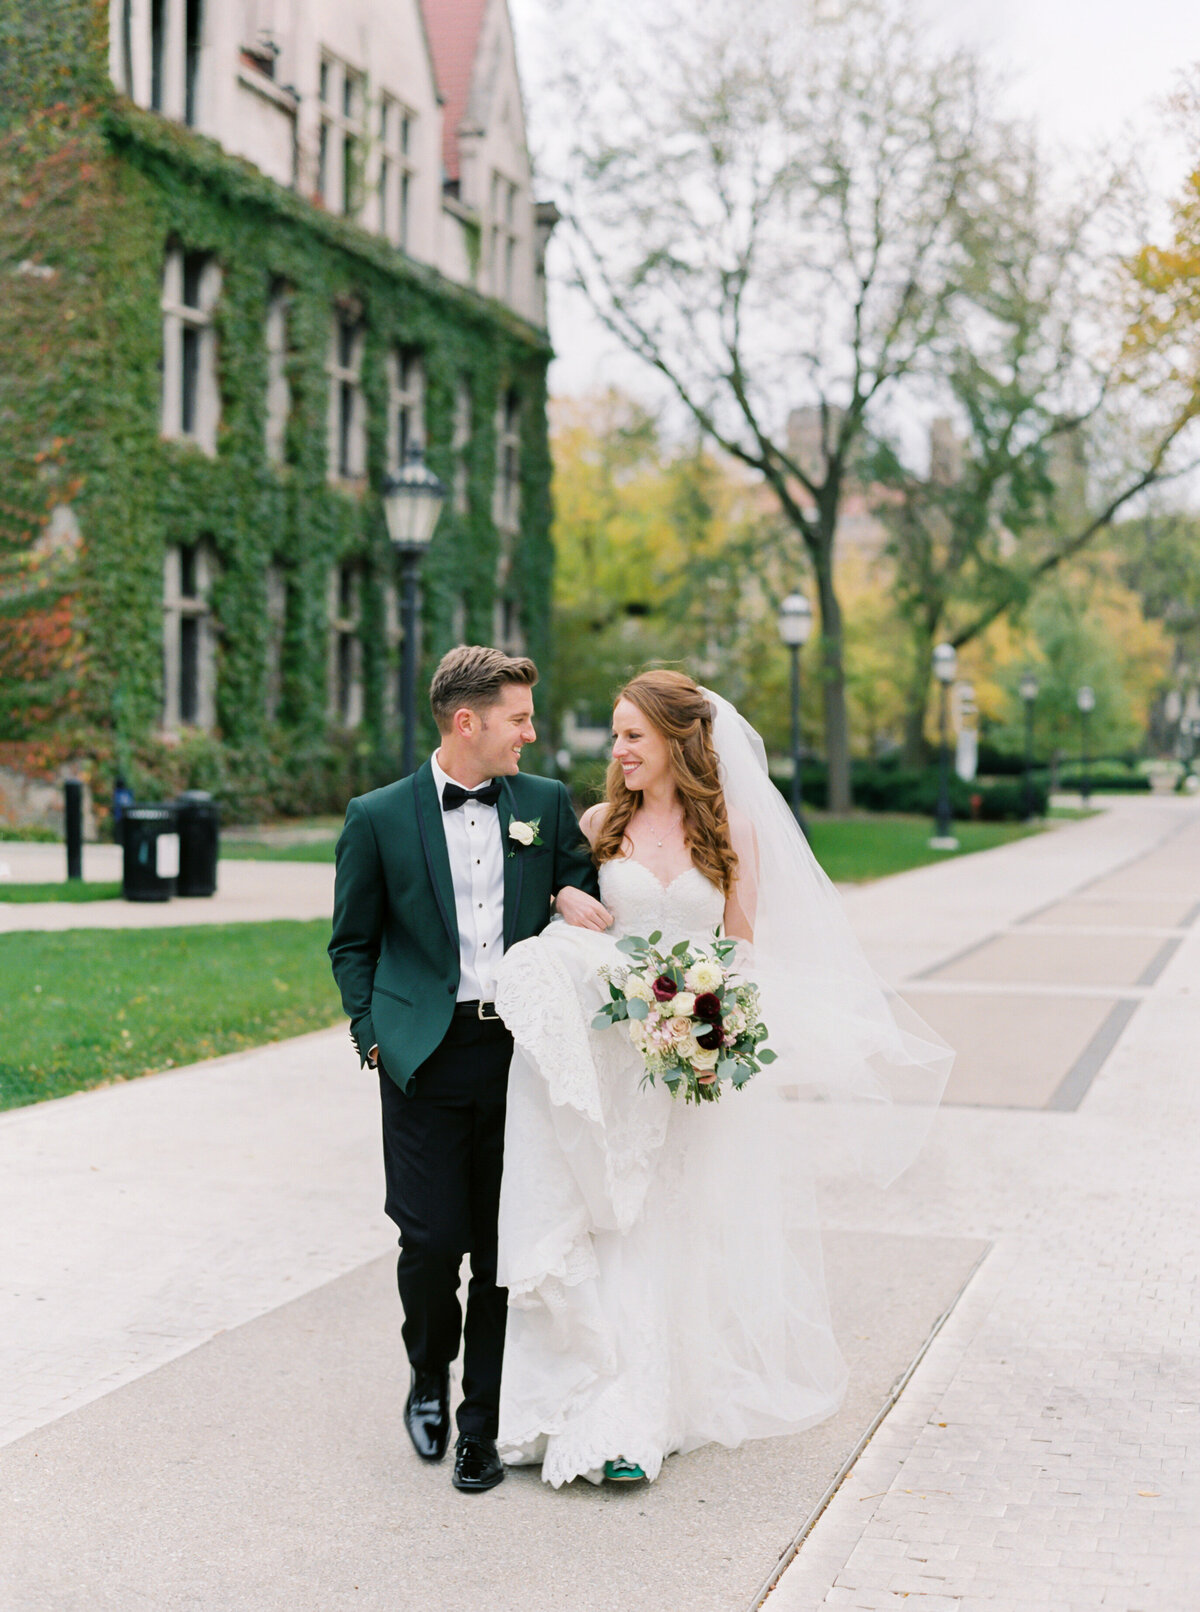 TiffaneyChildsPhotography-ChicagoWeddingPhotographer-Colleen&Ned-UniversityofChicago-109